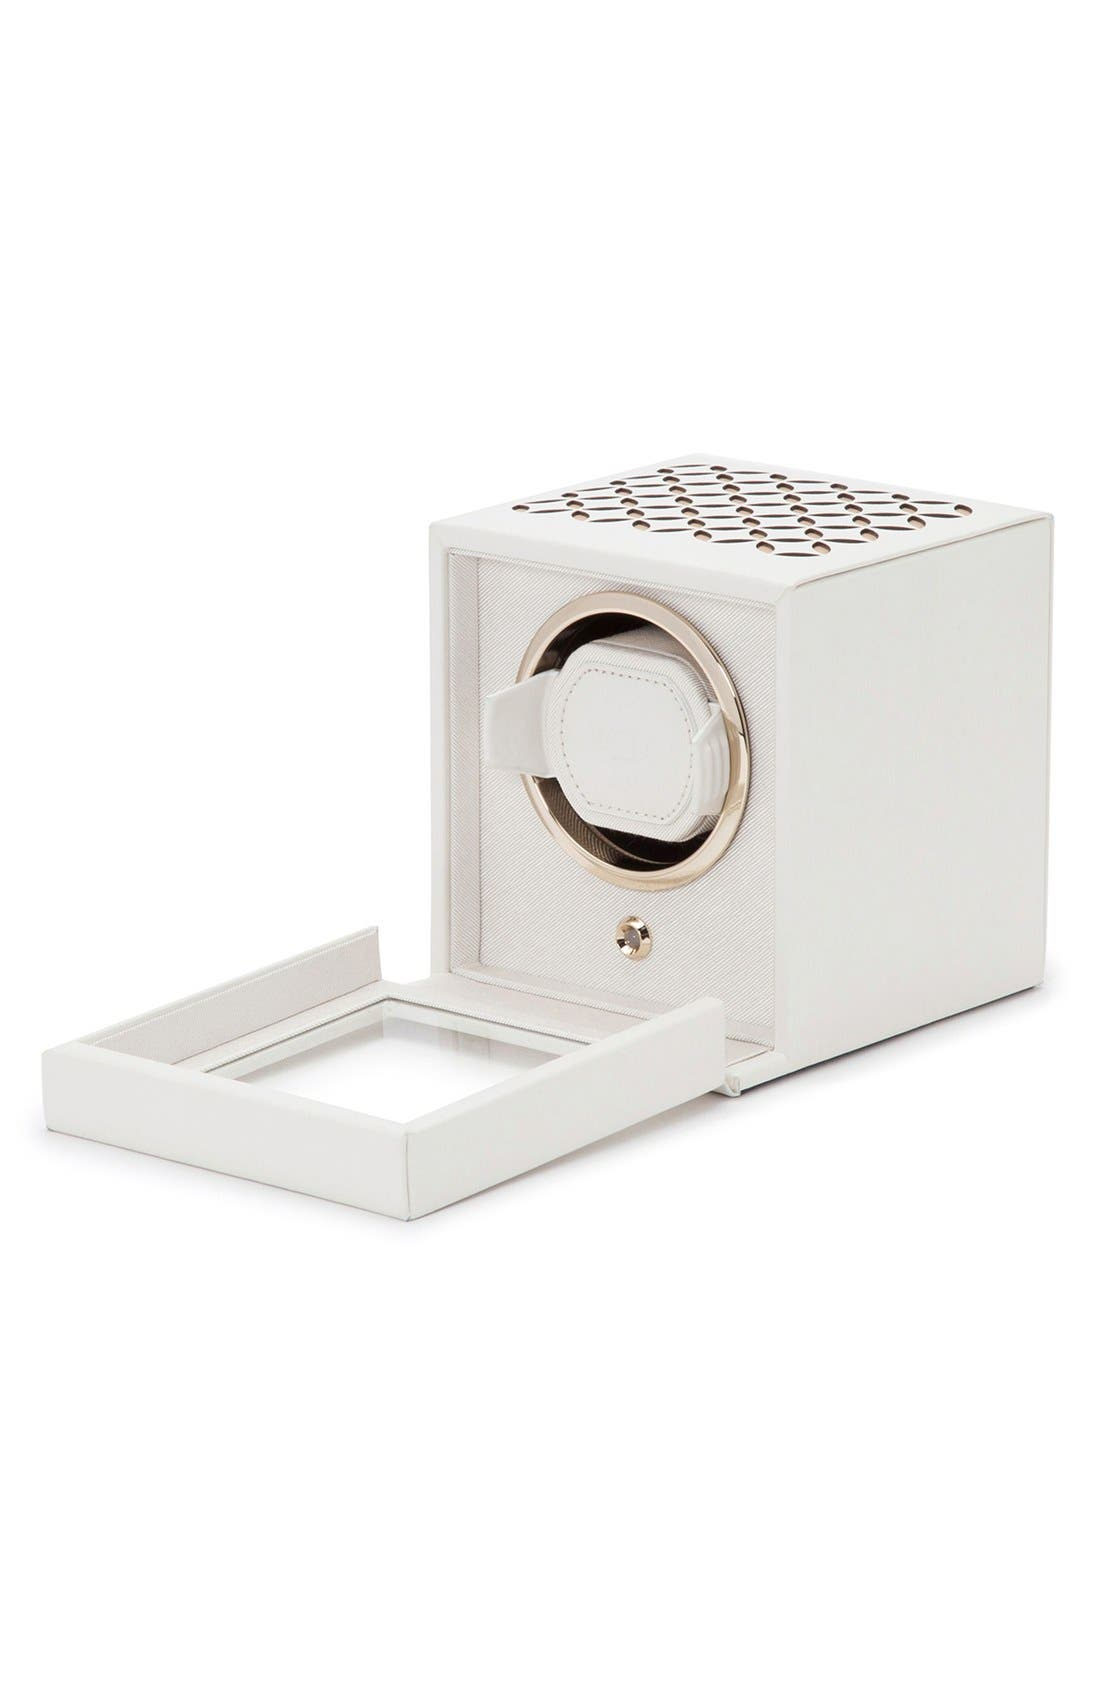 Watch Winder,                             Alternate thumbnail 3, color,                             CREAM